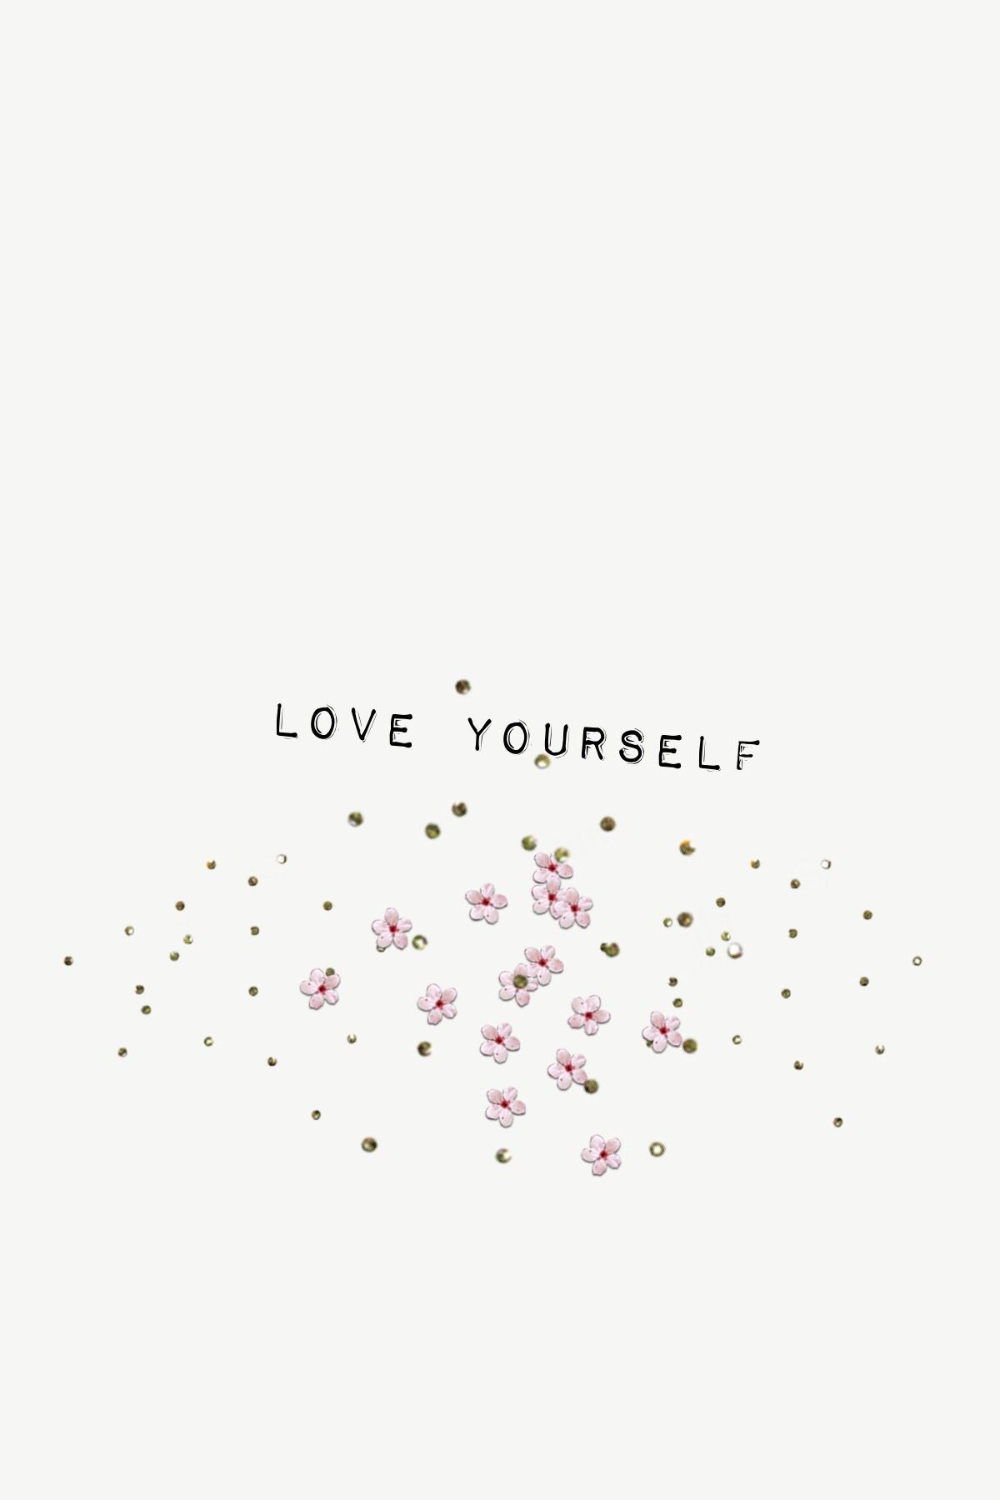 Self Love Quote Aesthetic Pastel Wallpaper Iphone In 2020 Self Love Quotes Quote Aesthetic Life Quotes Wallpaper